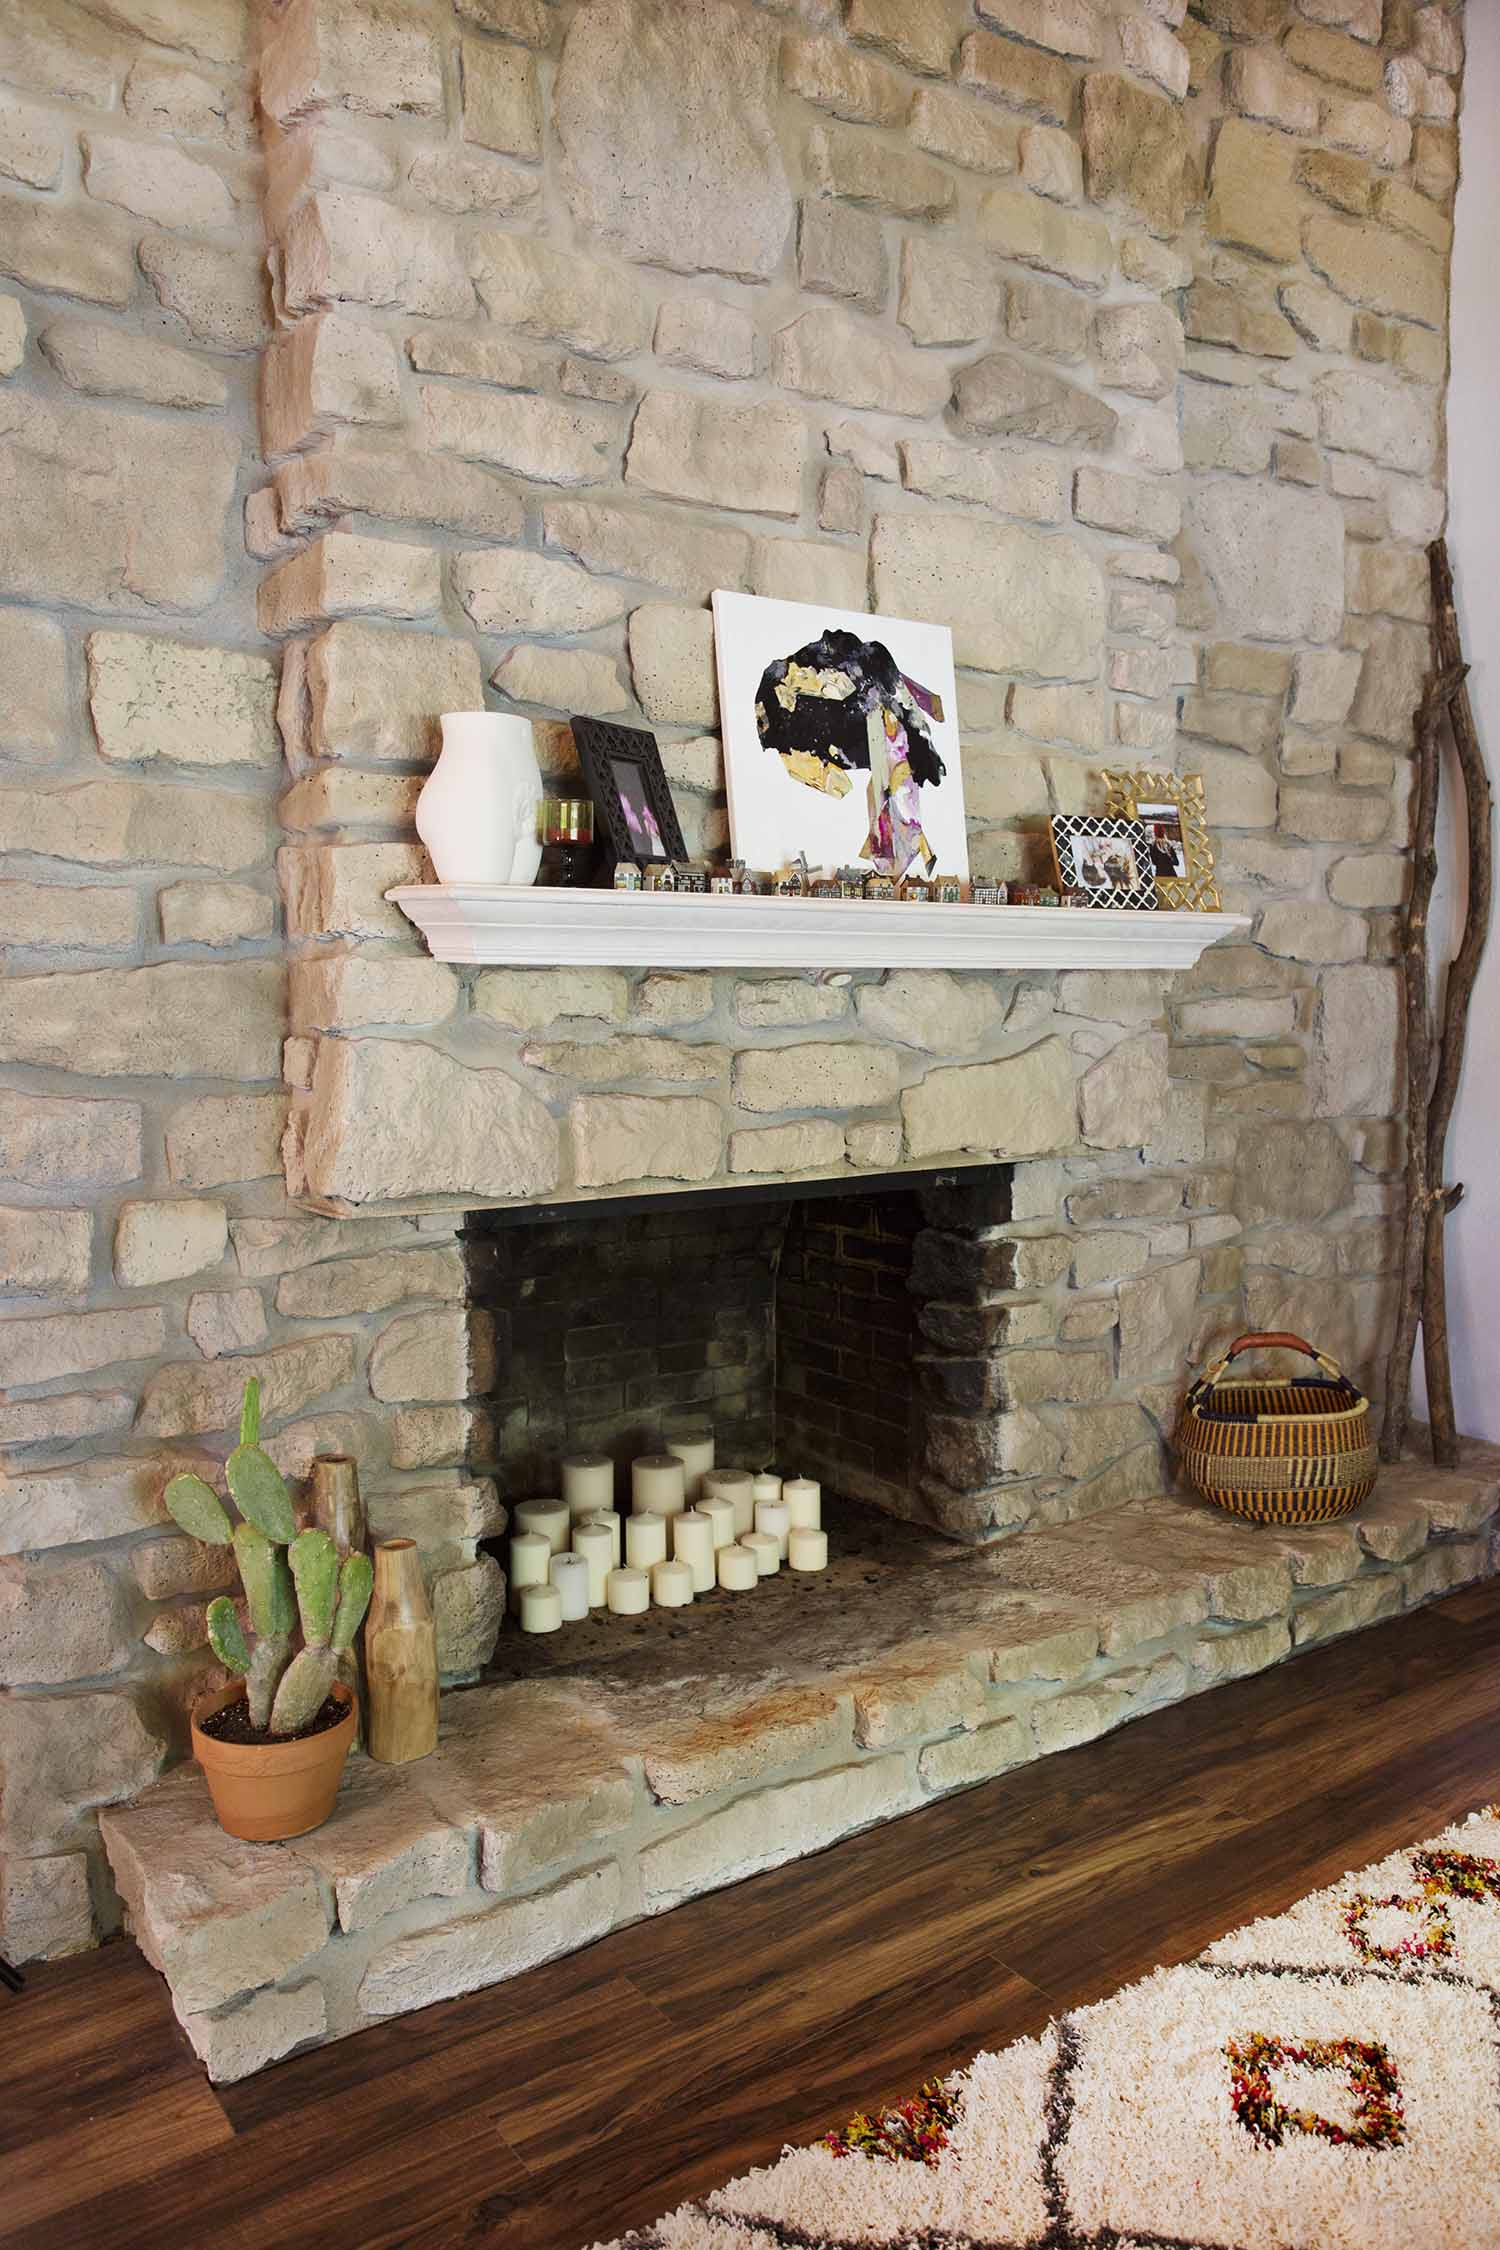 What to do with this fireplace